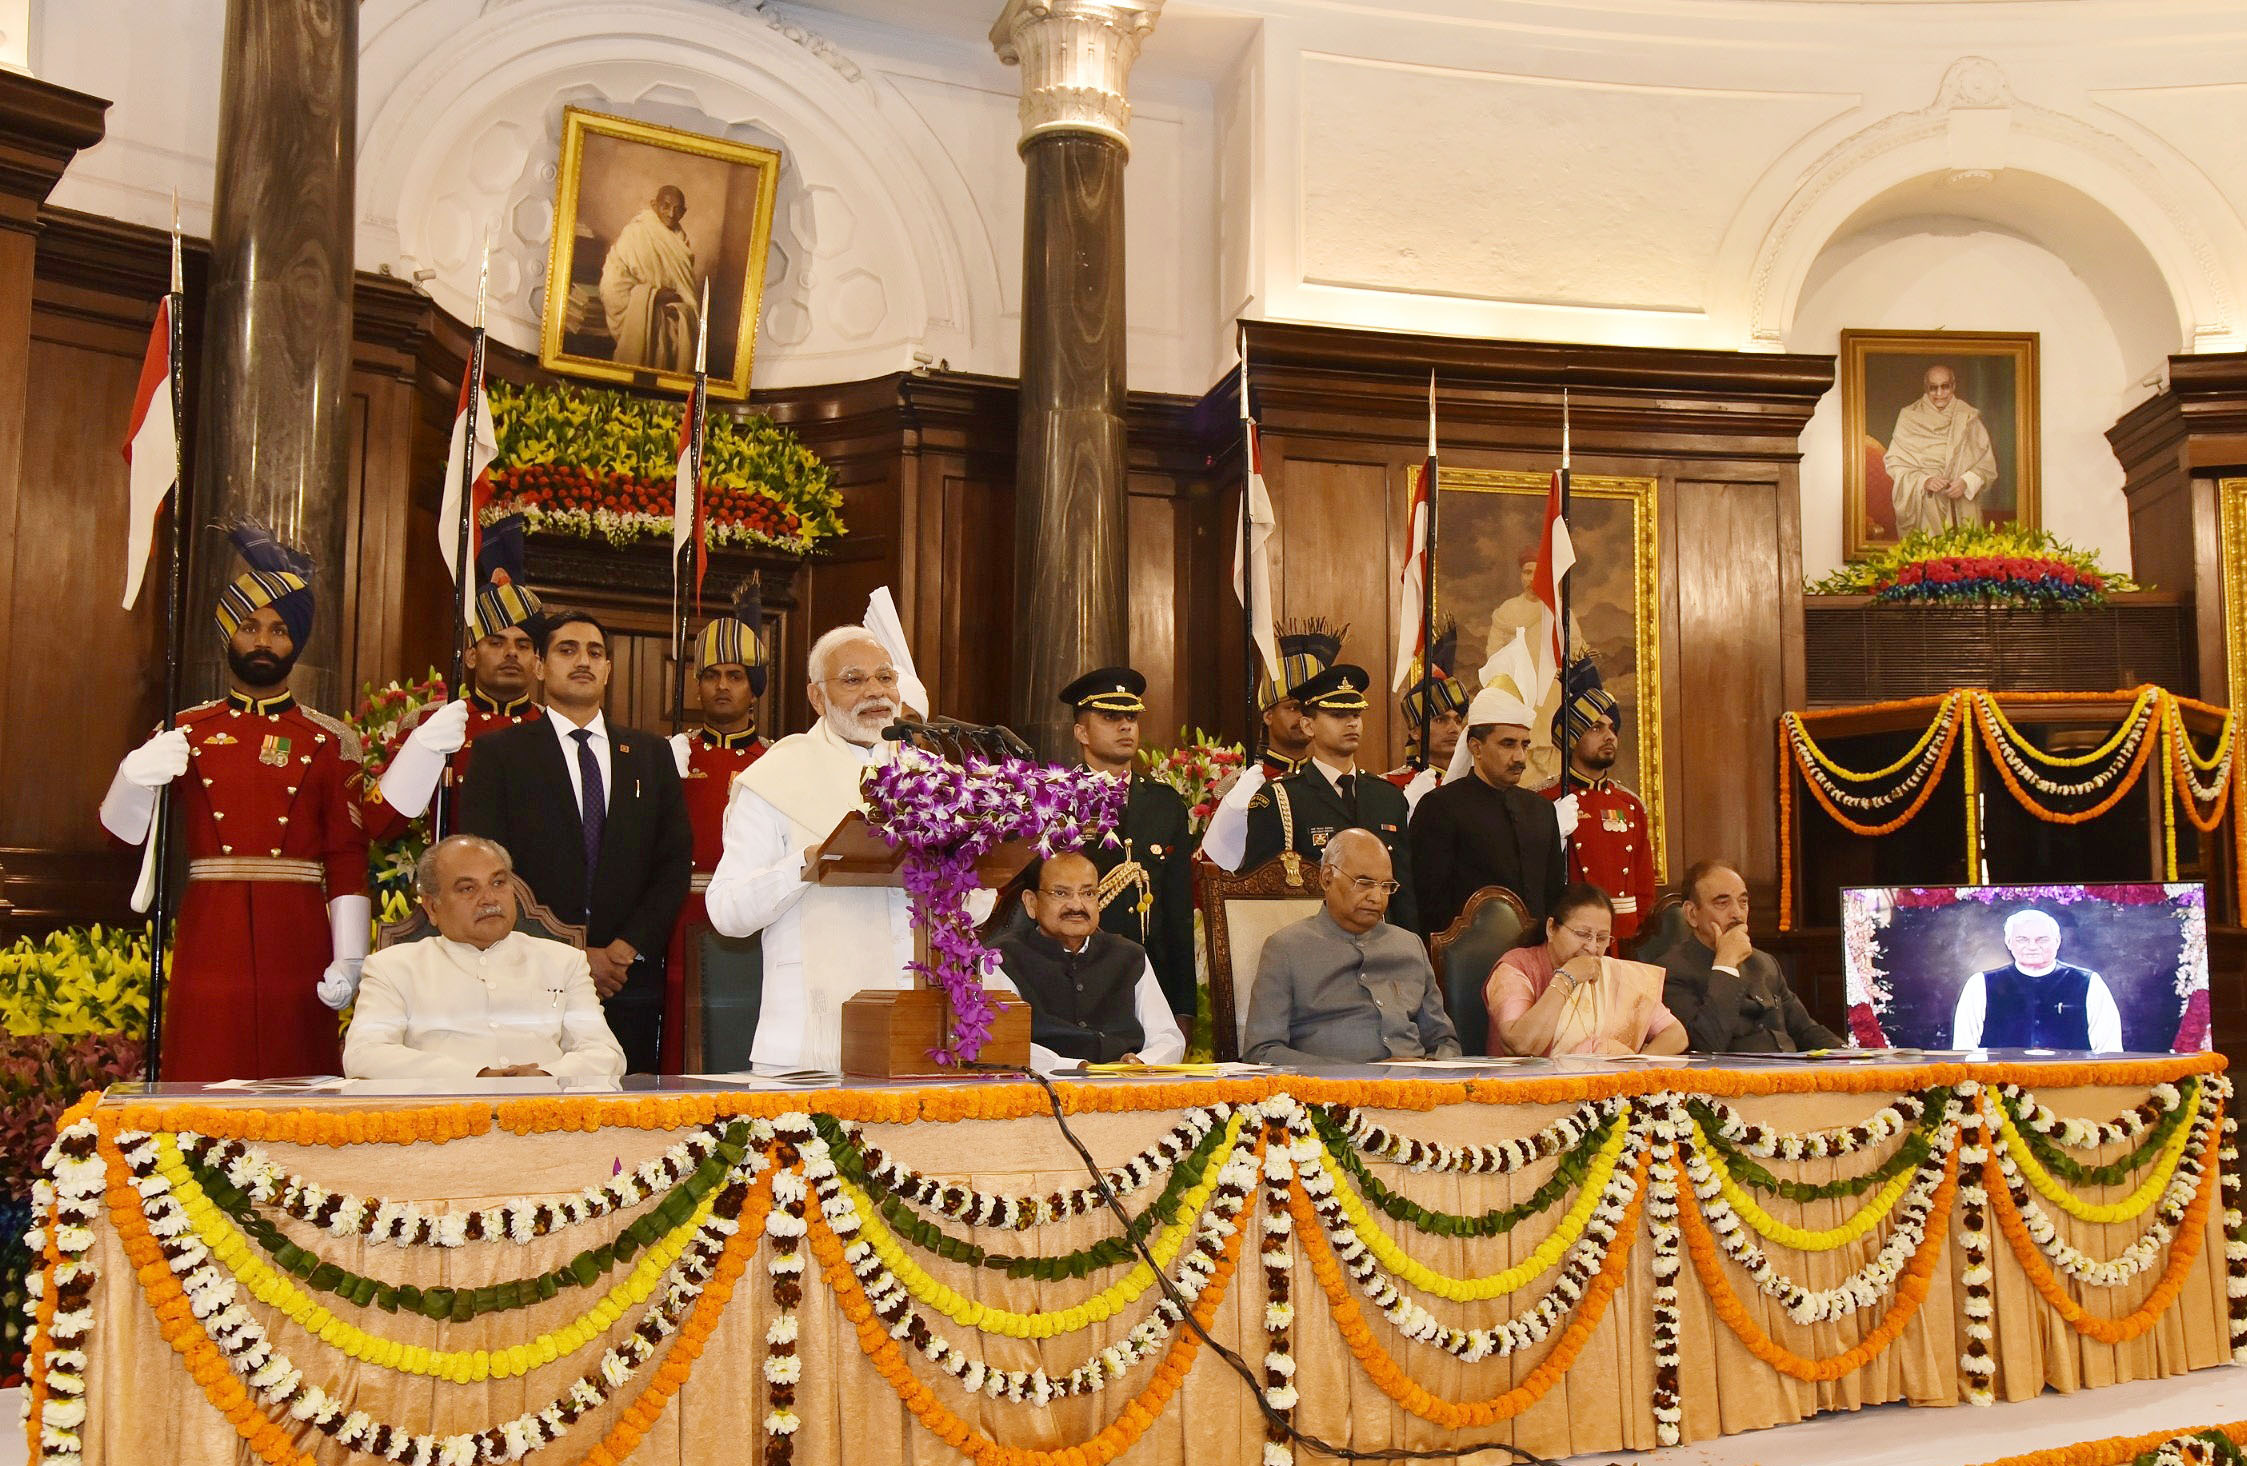 PM's address at the unveiling ceremony of portrait of Shri Atal Bihari Vajpayee in the Parliament